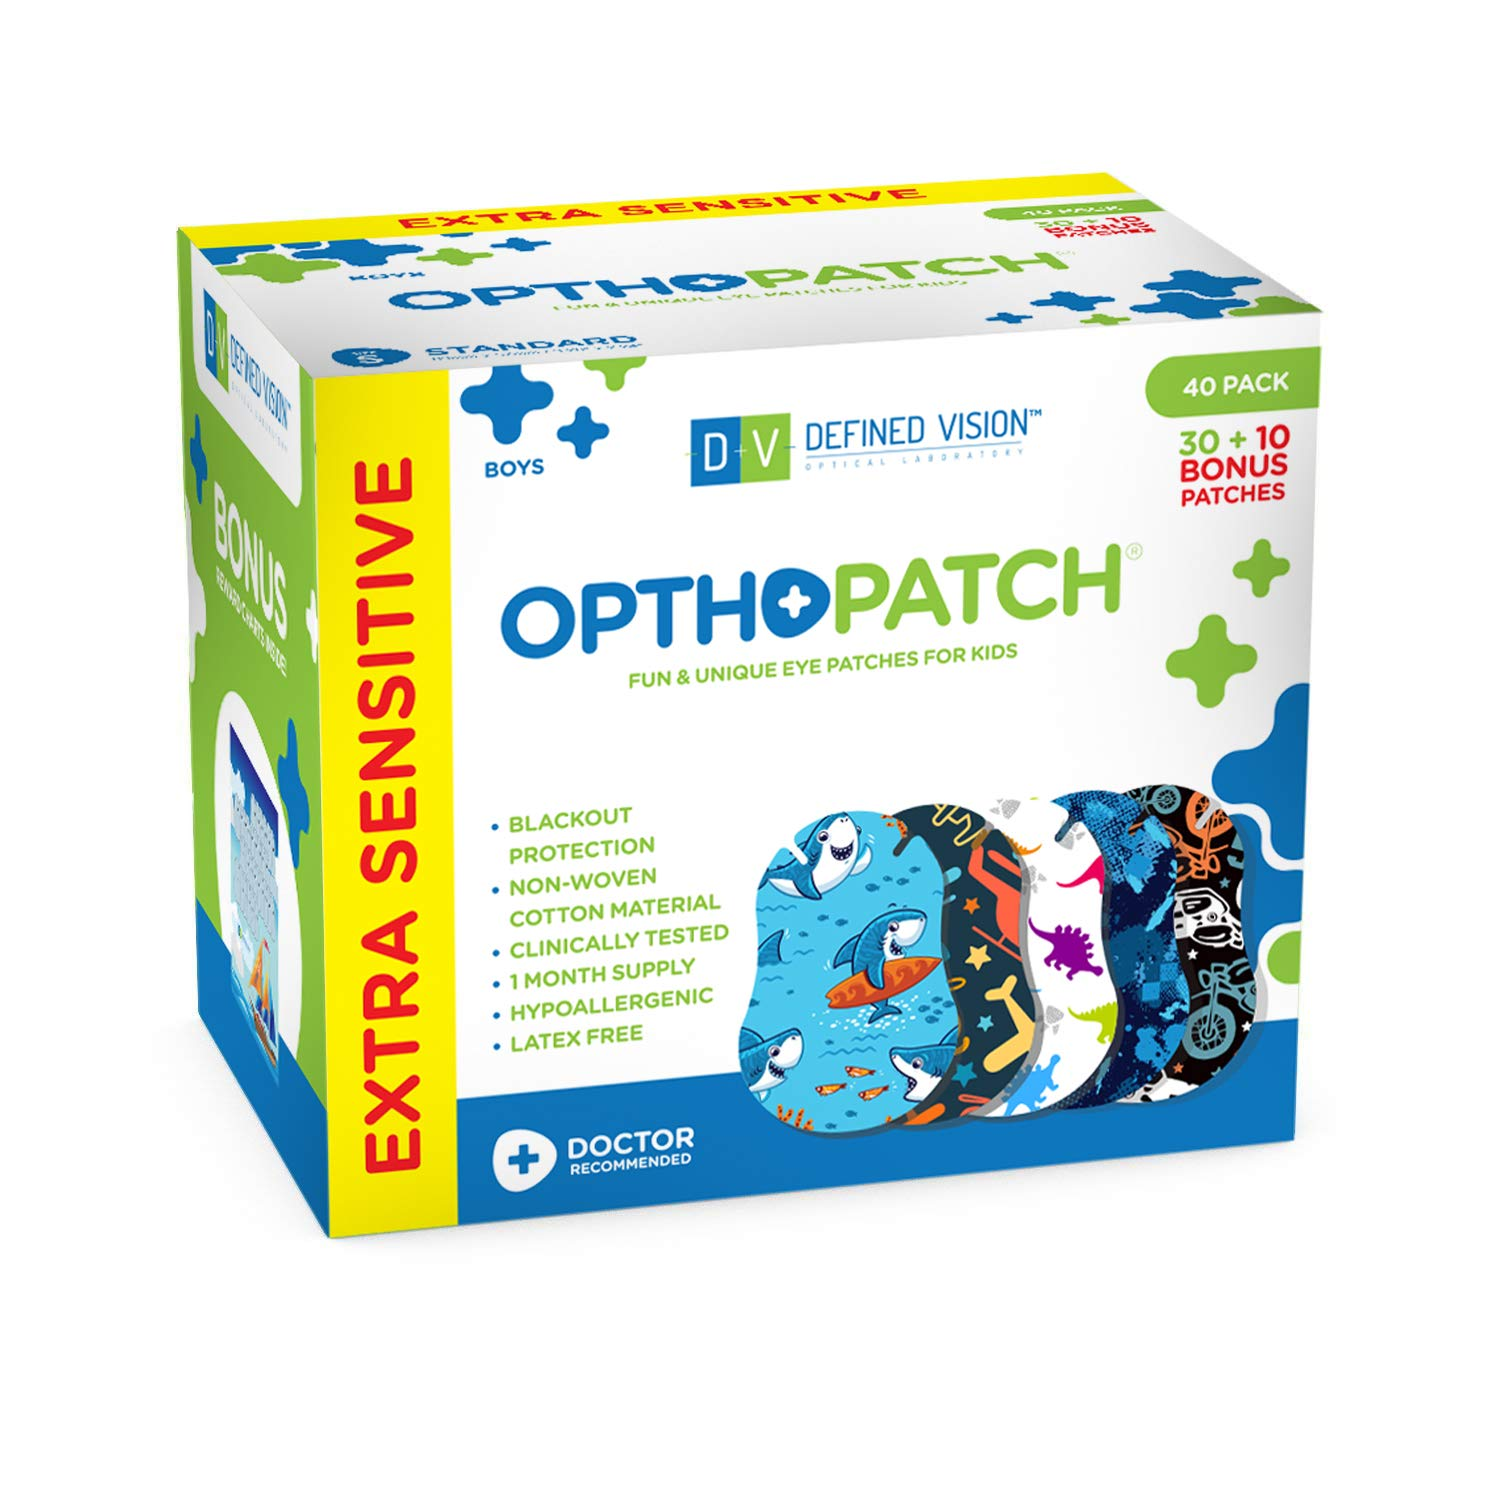 OPTHOPATCH Kids Eye Patches - Fun Boys Design - 30 + 10 Bonus Latex Free Hypoallergenic Cotton Extra Sensitive Adhesive Bandages for Amblyopia & Cross Eye-3 Reward Chart Posters by Defined Vision